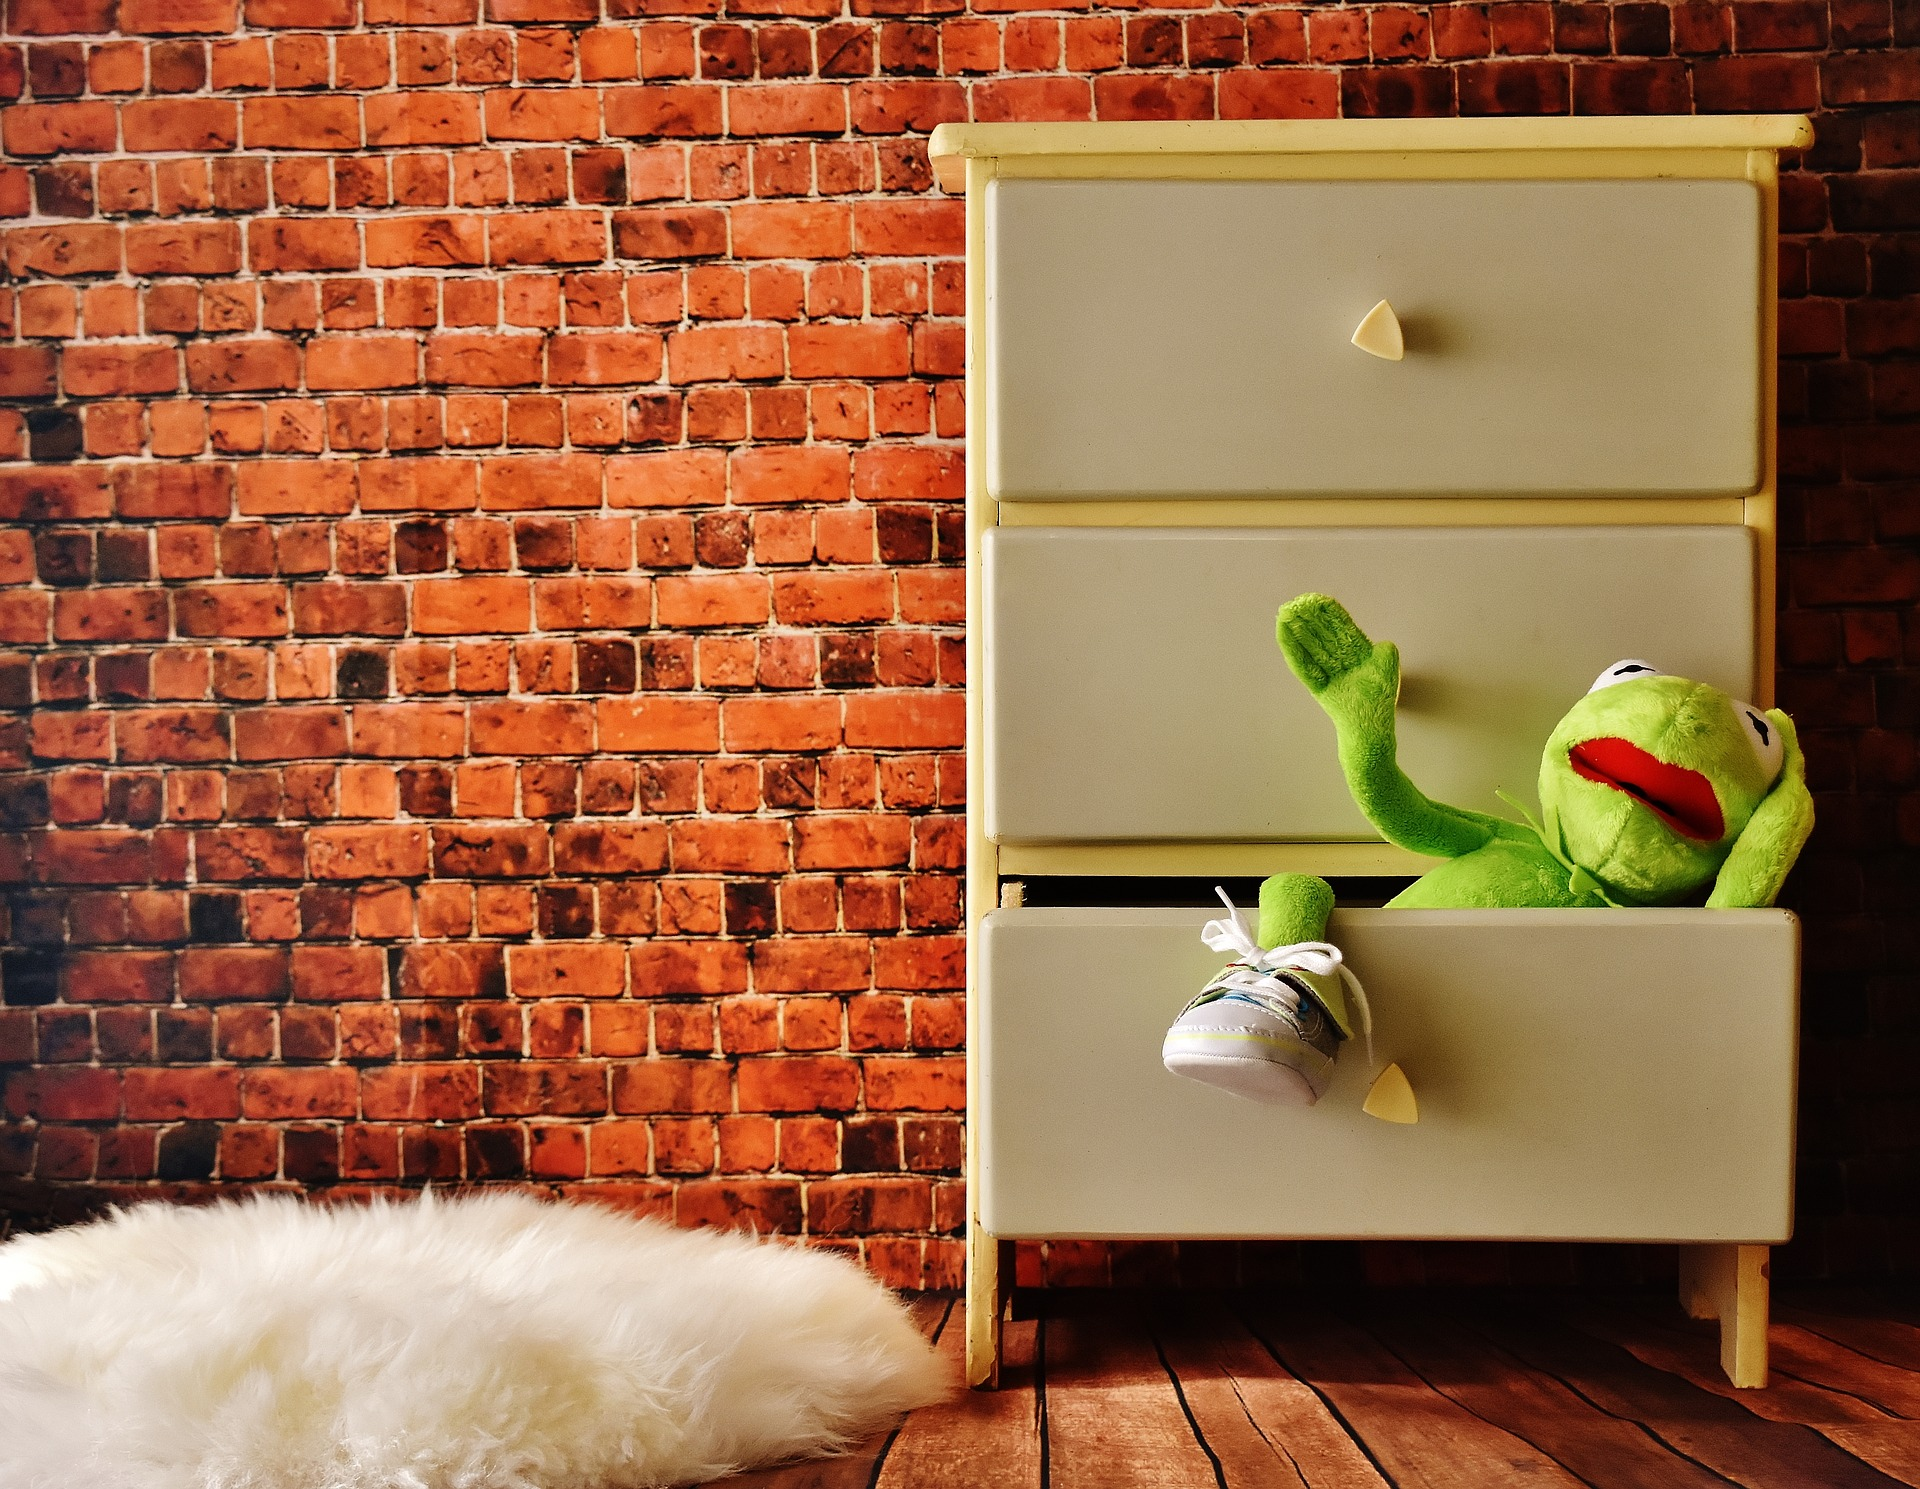 Drawer with stuffed kermit toy hanging out